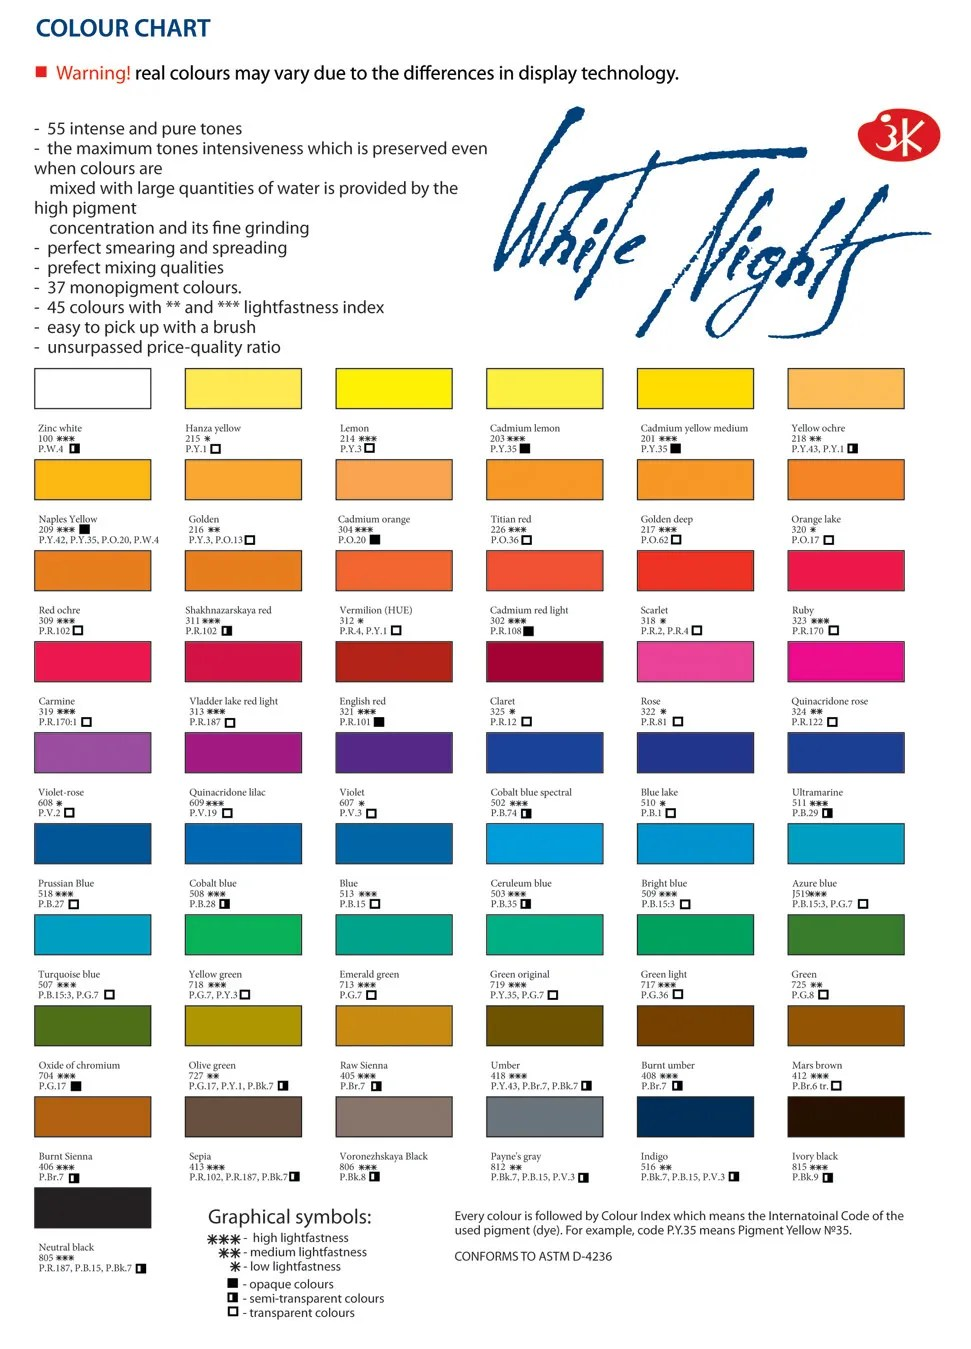 White Nights Watercolour chart